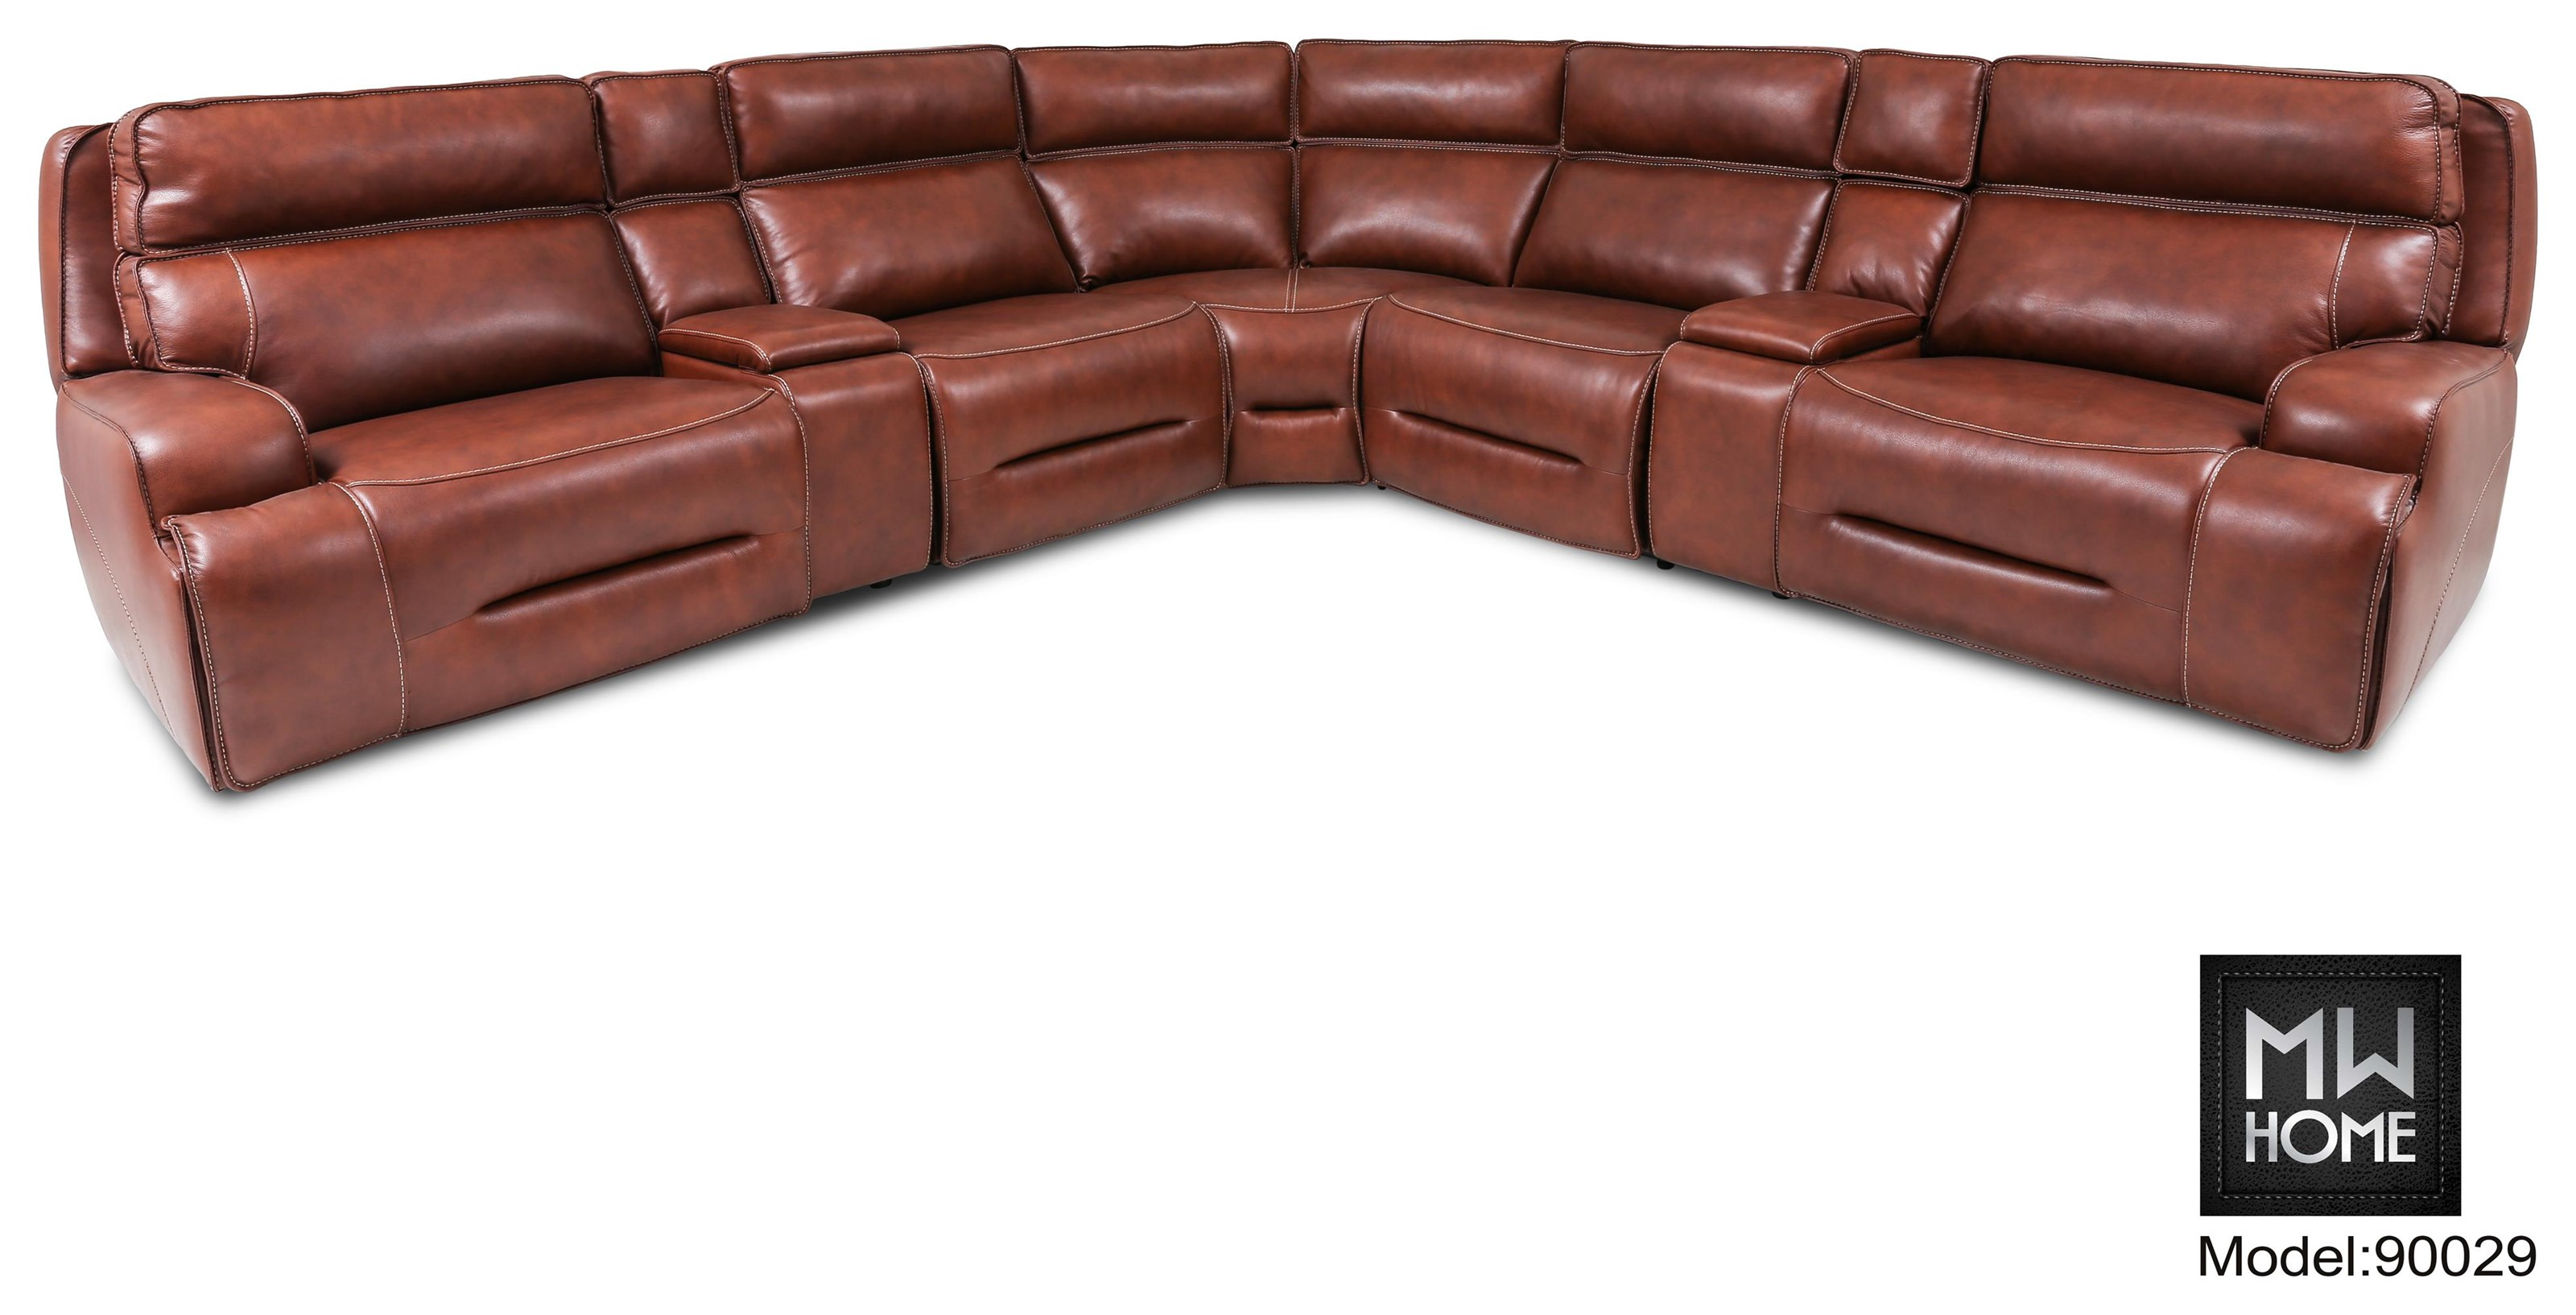 U90029 Leather 6 Piece Leather Sectional by Cheers at Westrich Furniture & Appliances